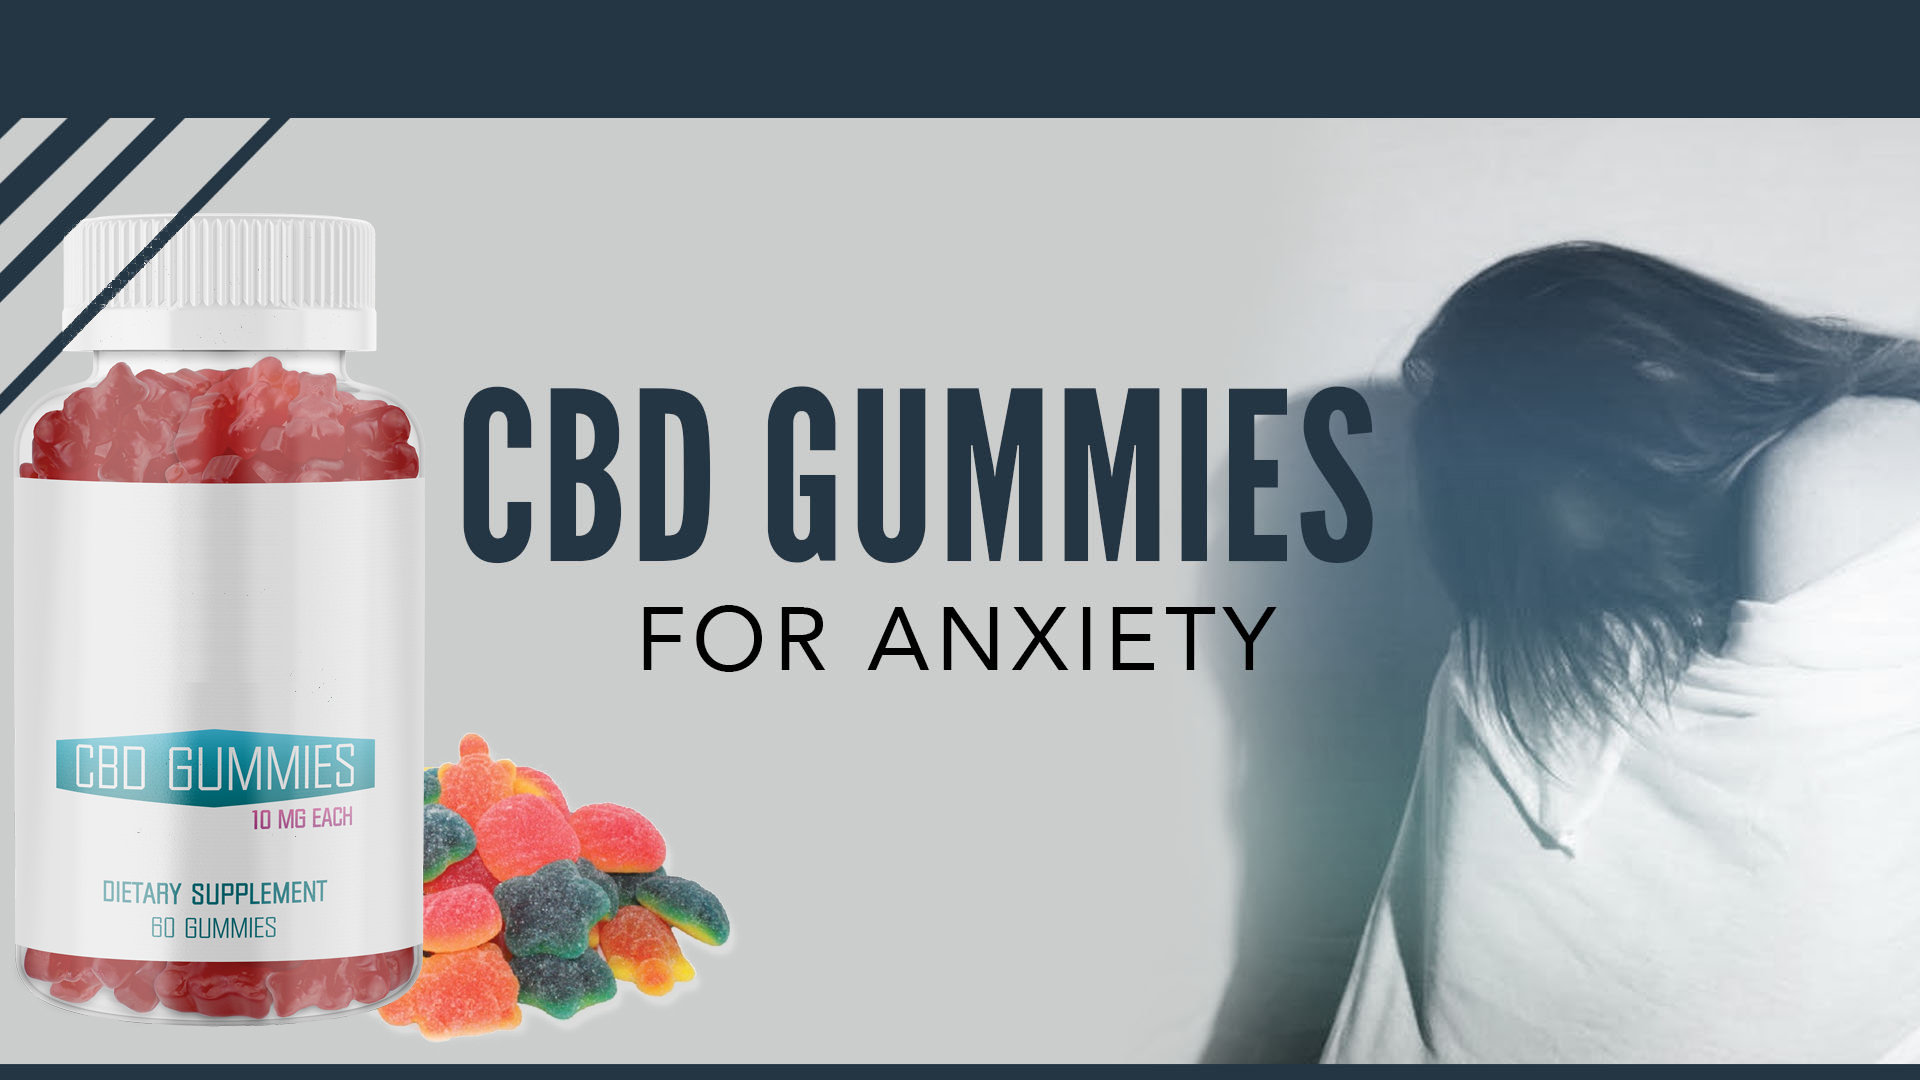 Bulk cbd sweet fruit gummies candy cbd sour candy with private label, View  cbd gummies, Customized brand Product Details from Jinan Shumida